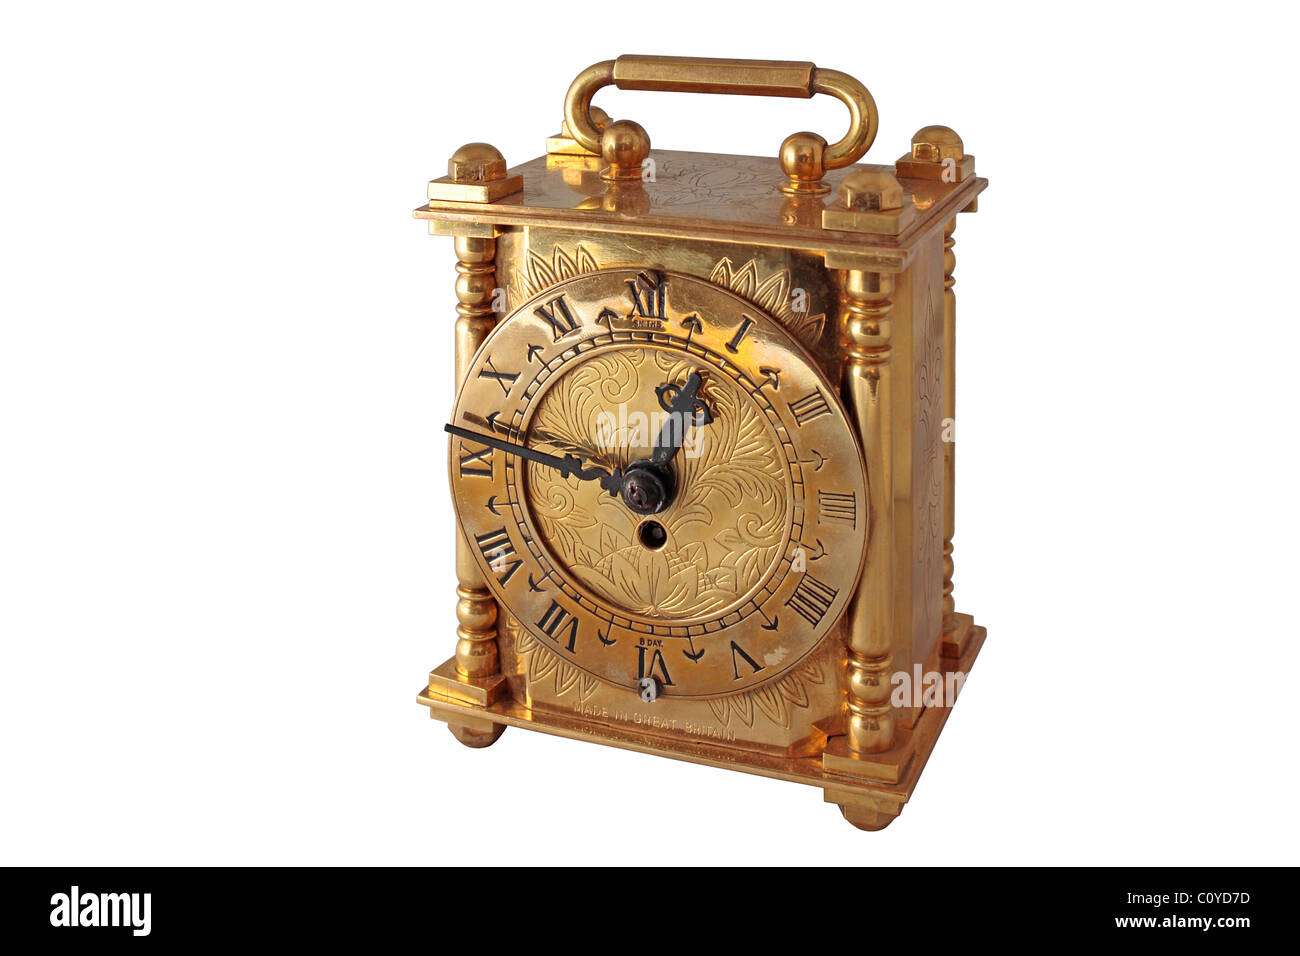 Old Brass Carriage Clock - Stock Image